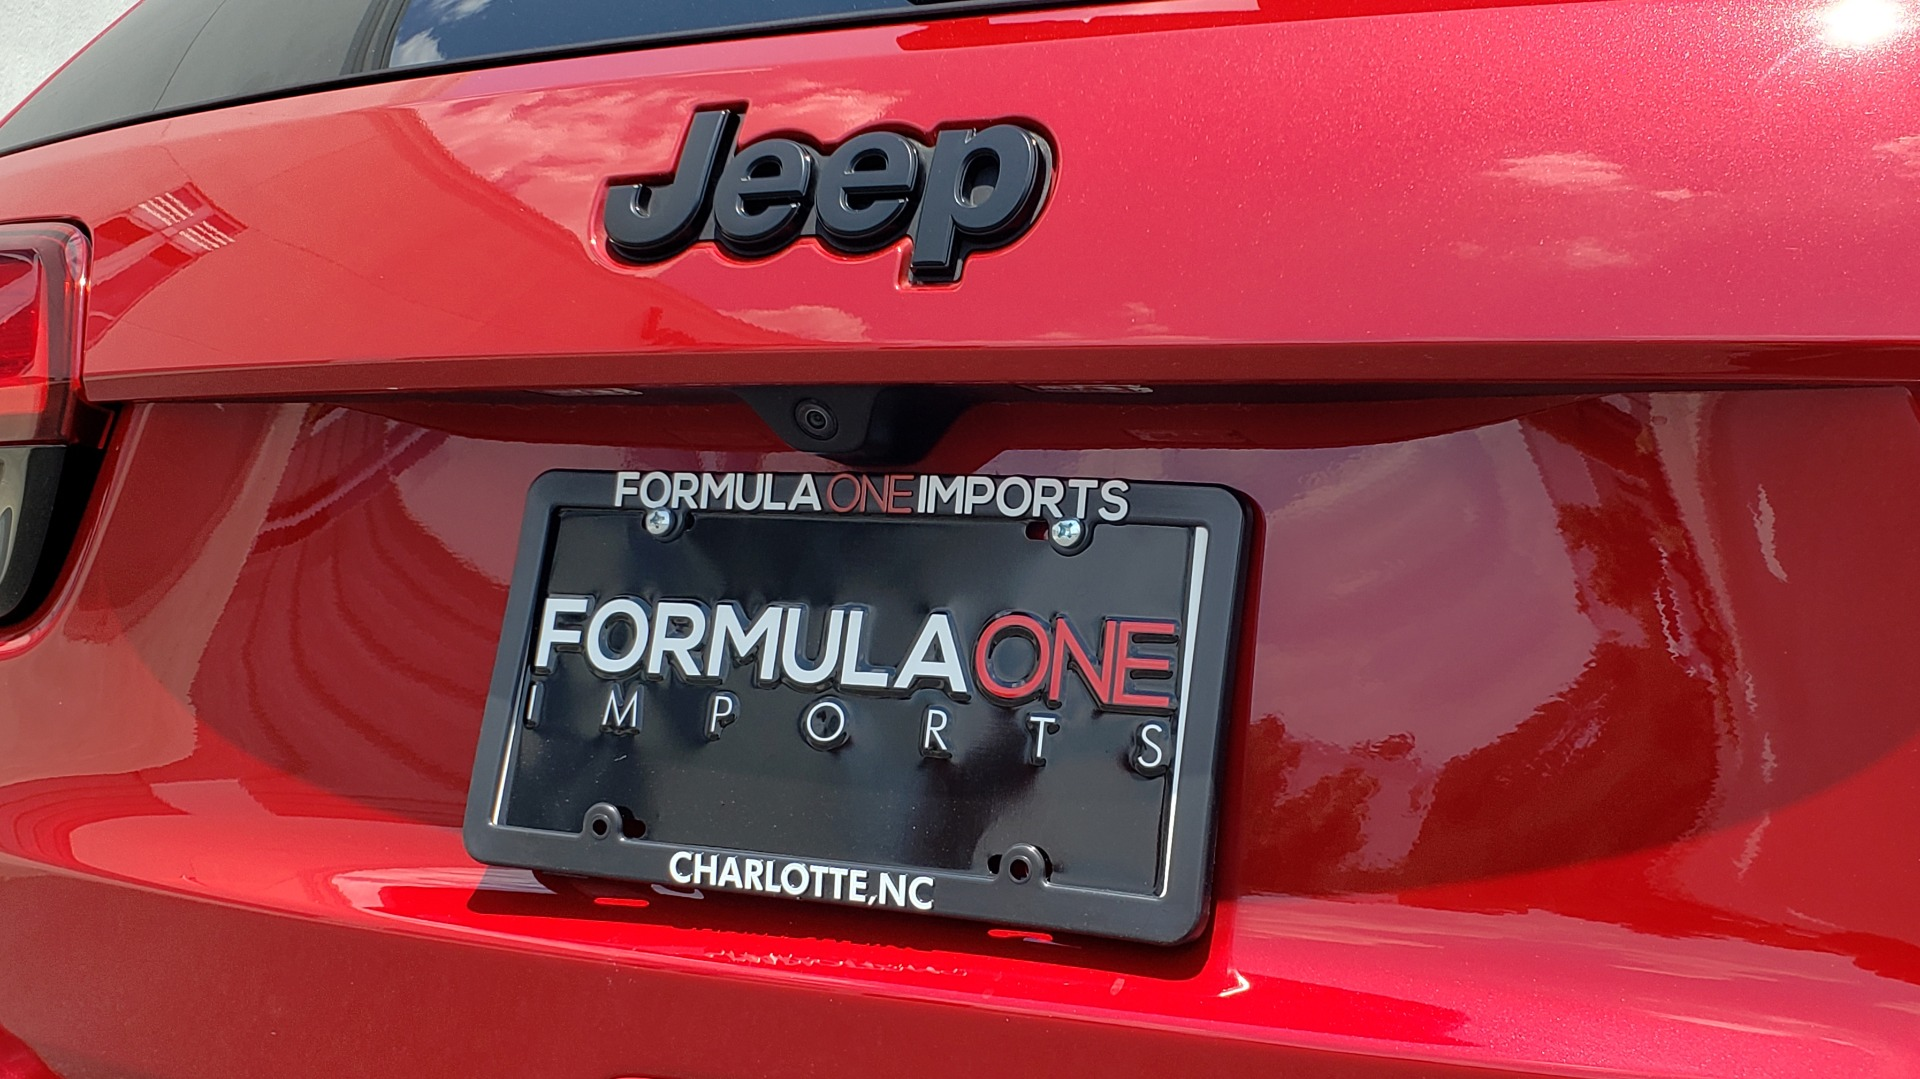 Used 2018 Jeep GRAND CHEROKEE SRT 4X4 / 6.4L HEMI (475HP) / NAV / SUNROOF / H/K SND / REARVIEW for sale Sold at Formula Imports in Charlotte NC 28227 40